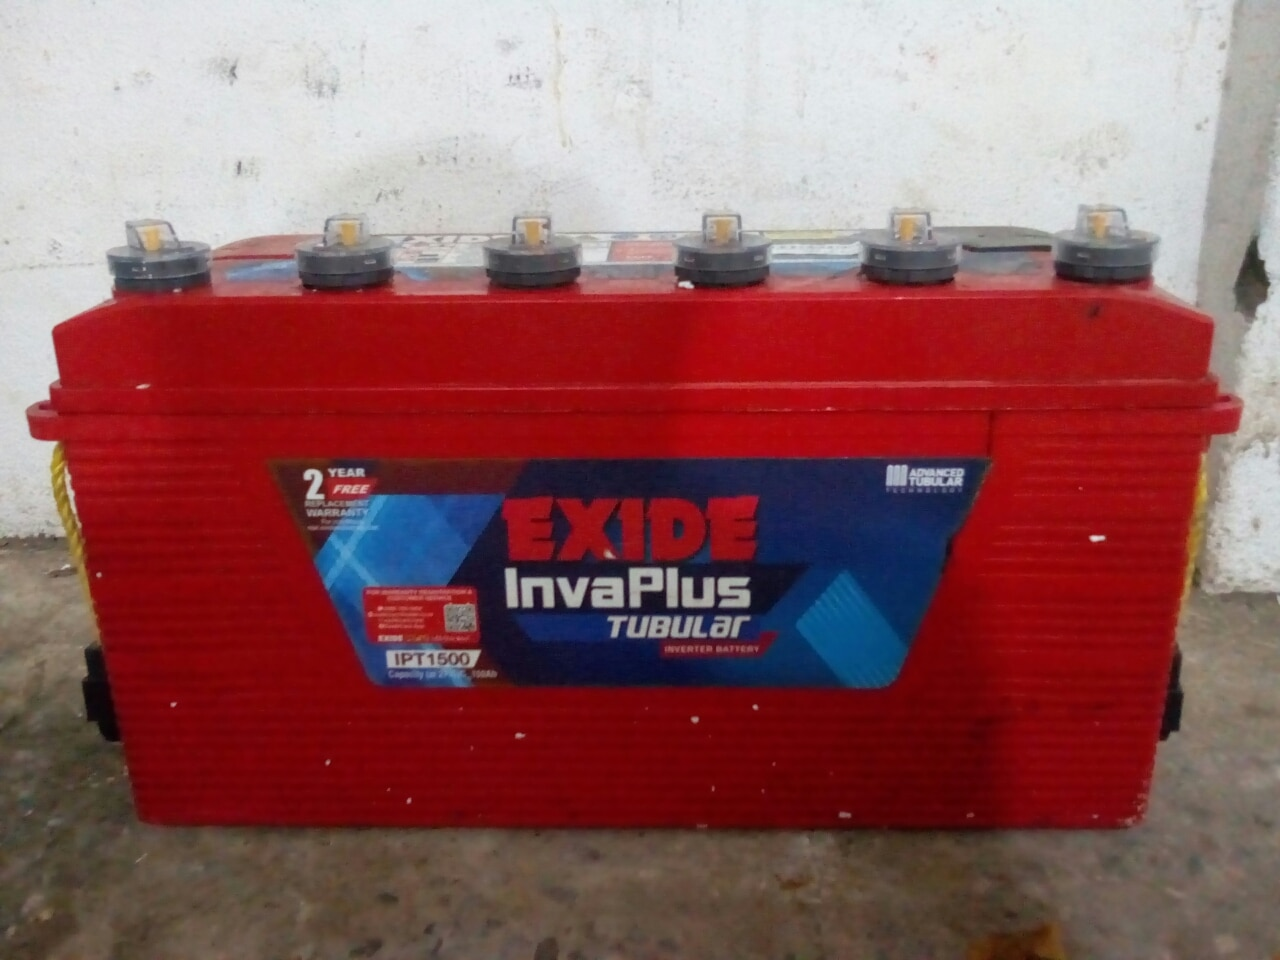 Exide invaplus tubular battery (12 volt 150 ah) 24 months free replacement warranty for inverter application